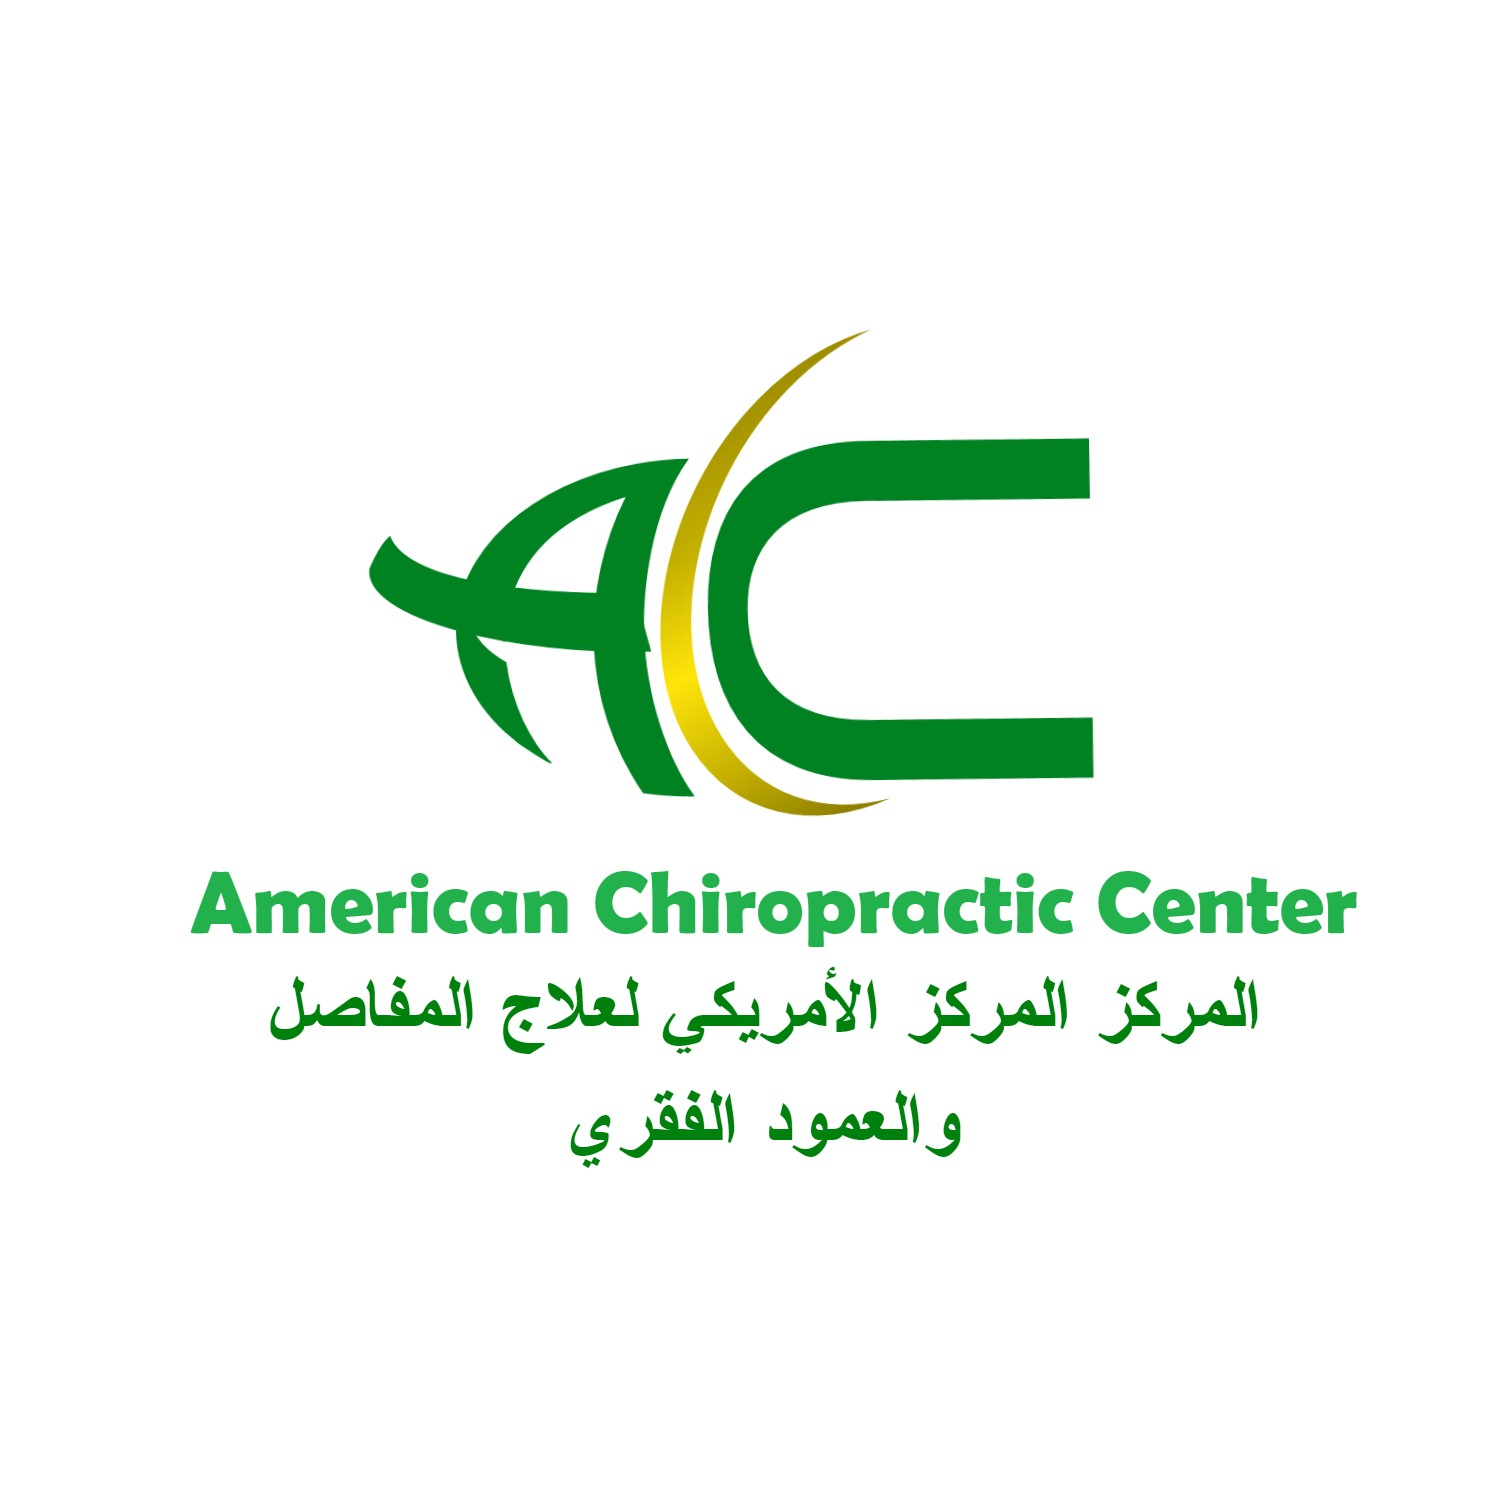 Logo Design by Ismail Adhi Wibowo - Entry No. 119 in the Logo Design Contest Logo Design for American Chiropractic Center.